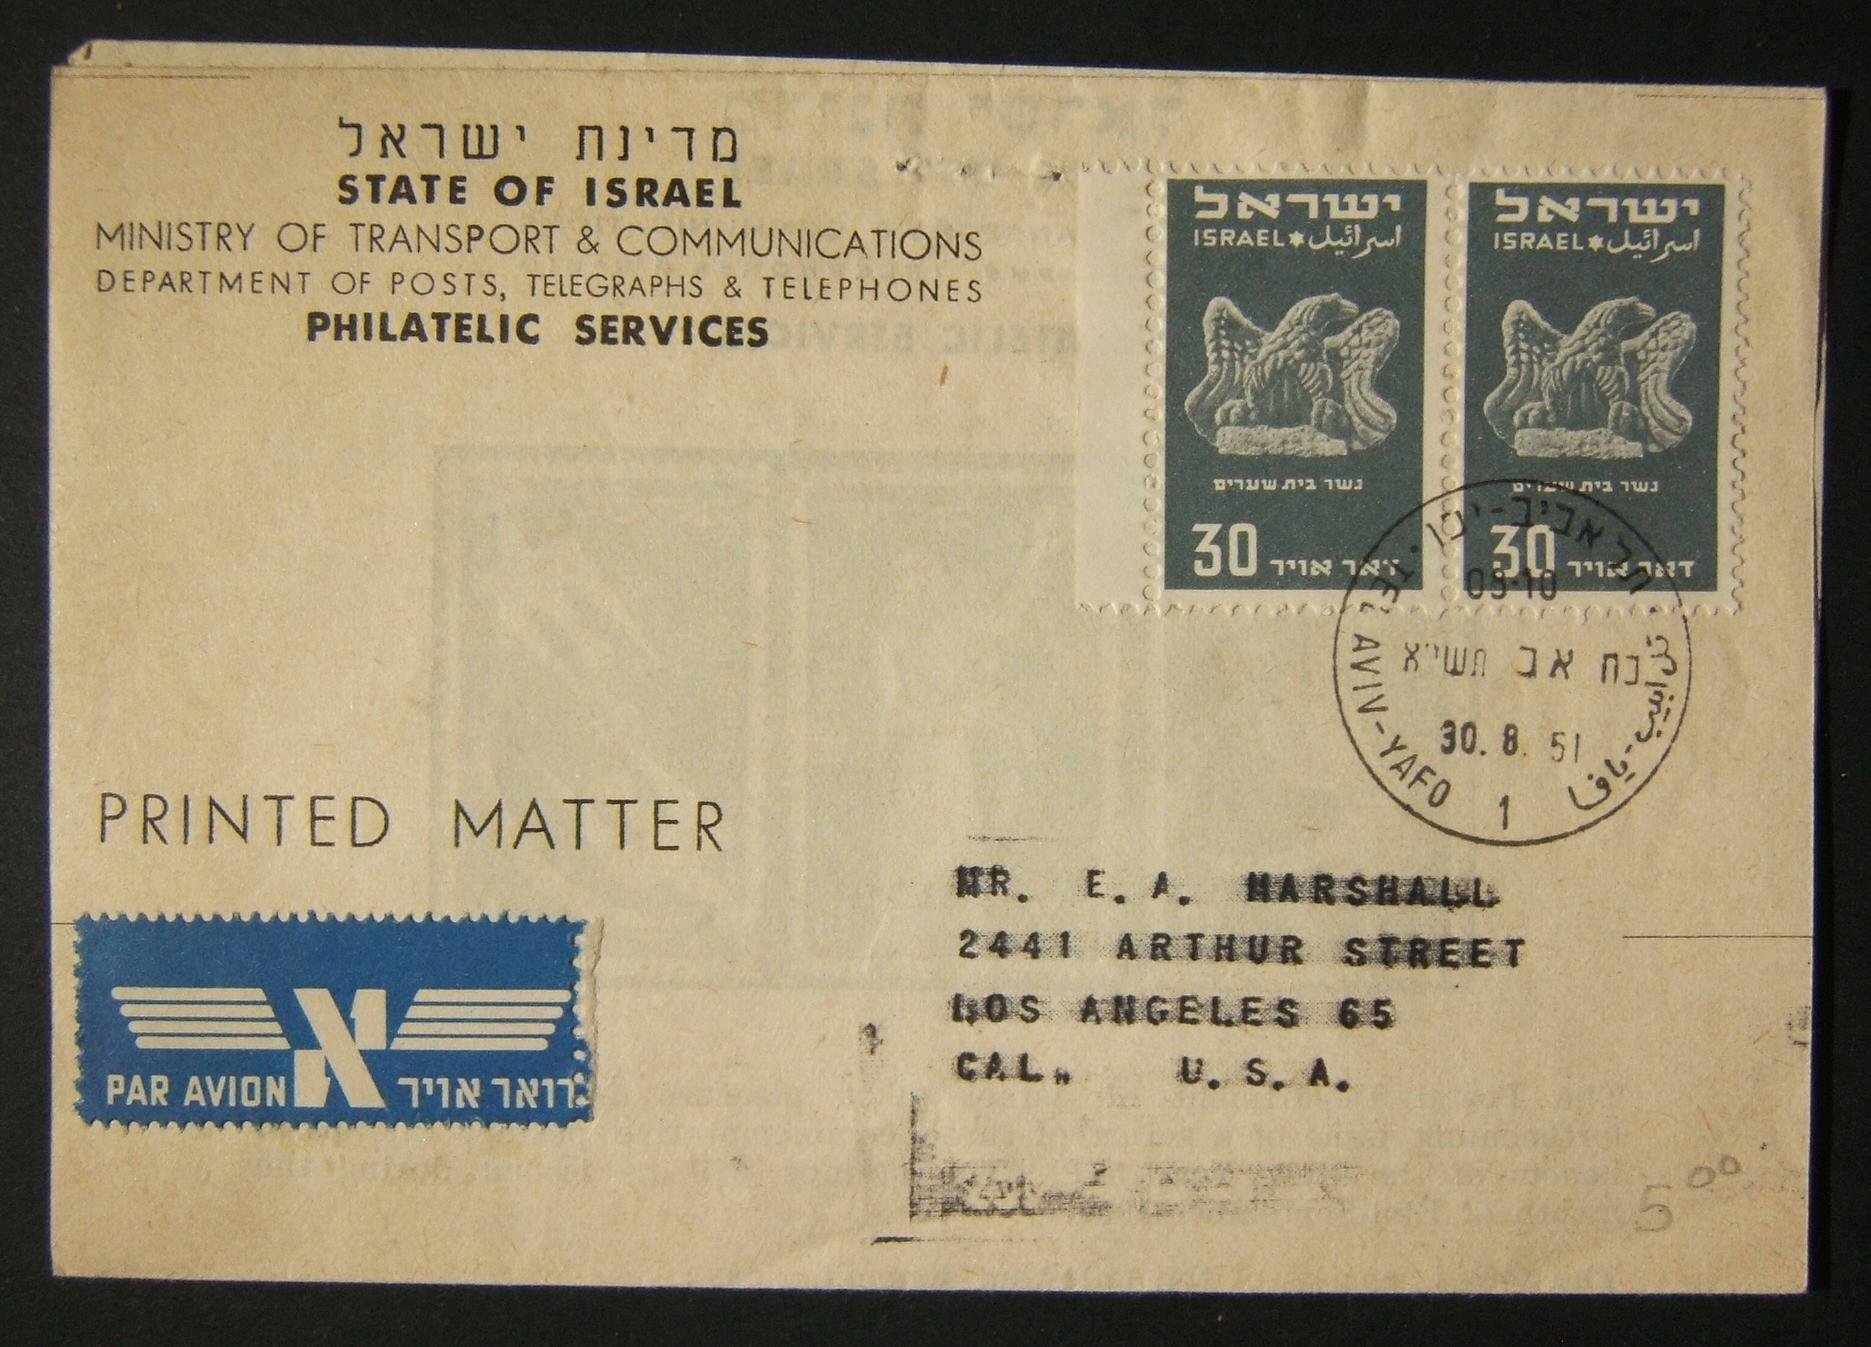 1950 1st airmail / PO's, rates & routes: 30-8-1951 government airmail stationary printed matter sheetlet ex TLV (Philatelic Service) to LOS ANGELES franked 60pr at the FA-2a period